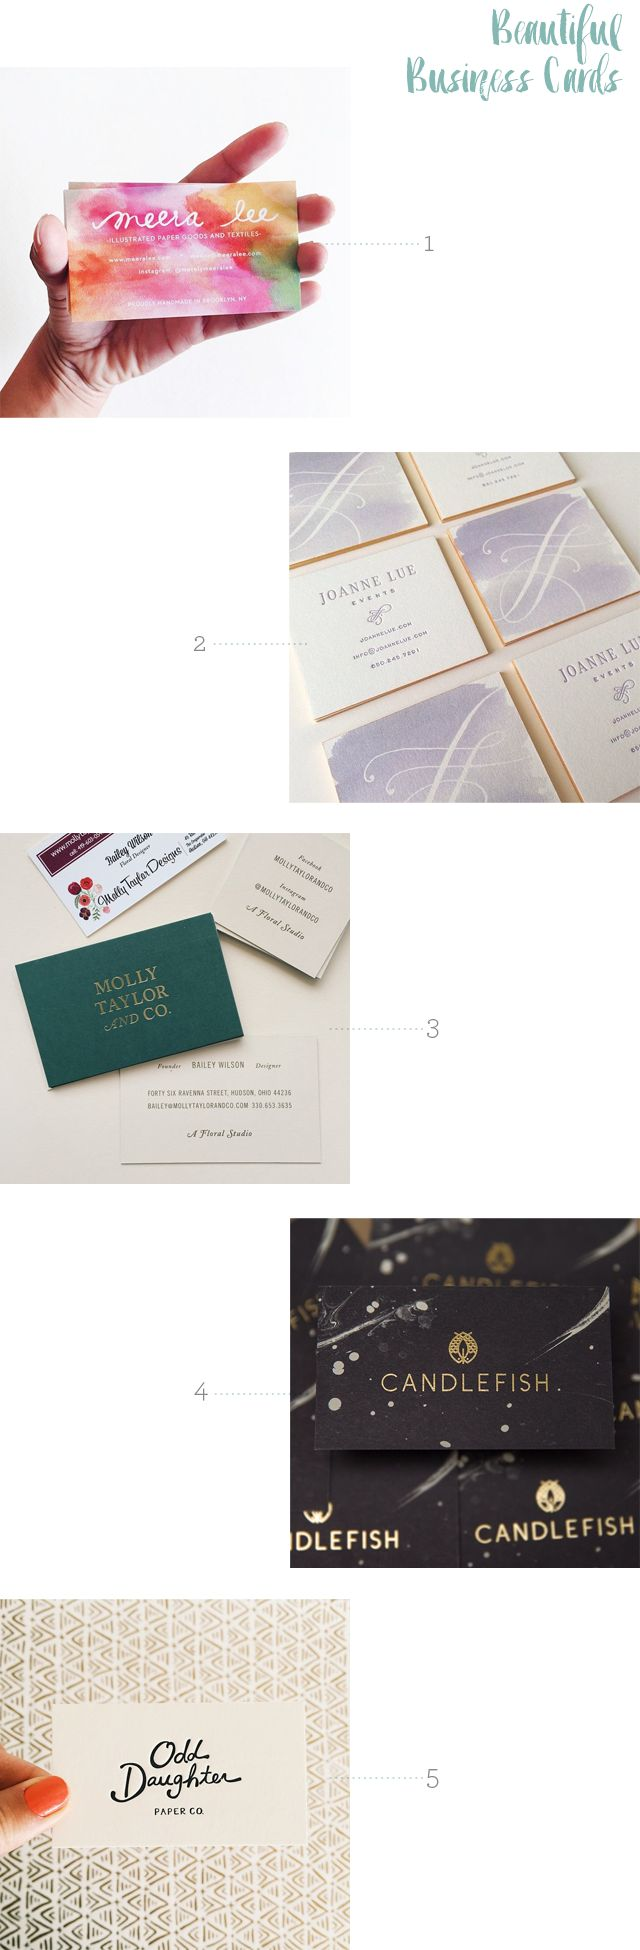 337 best business cards images on pinterest stationery 337 best business cards images on pinterest stationery activities and corporate identity magicingreecefo Images